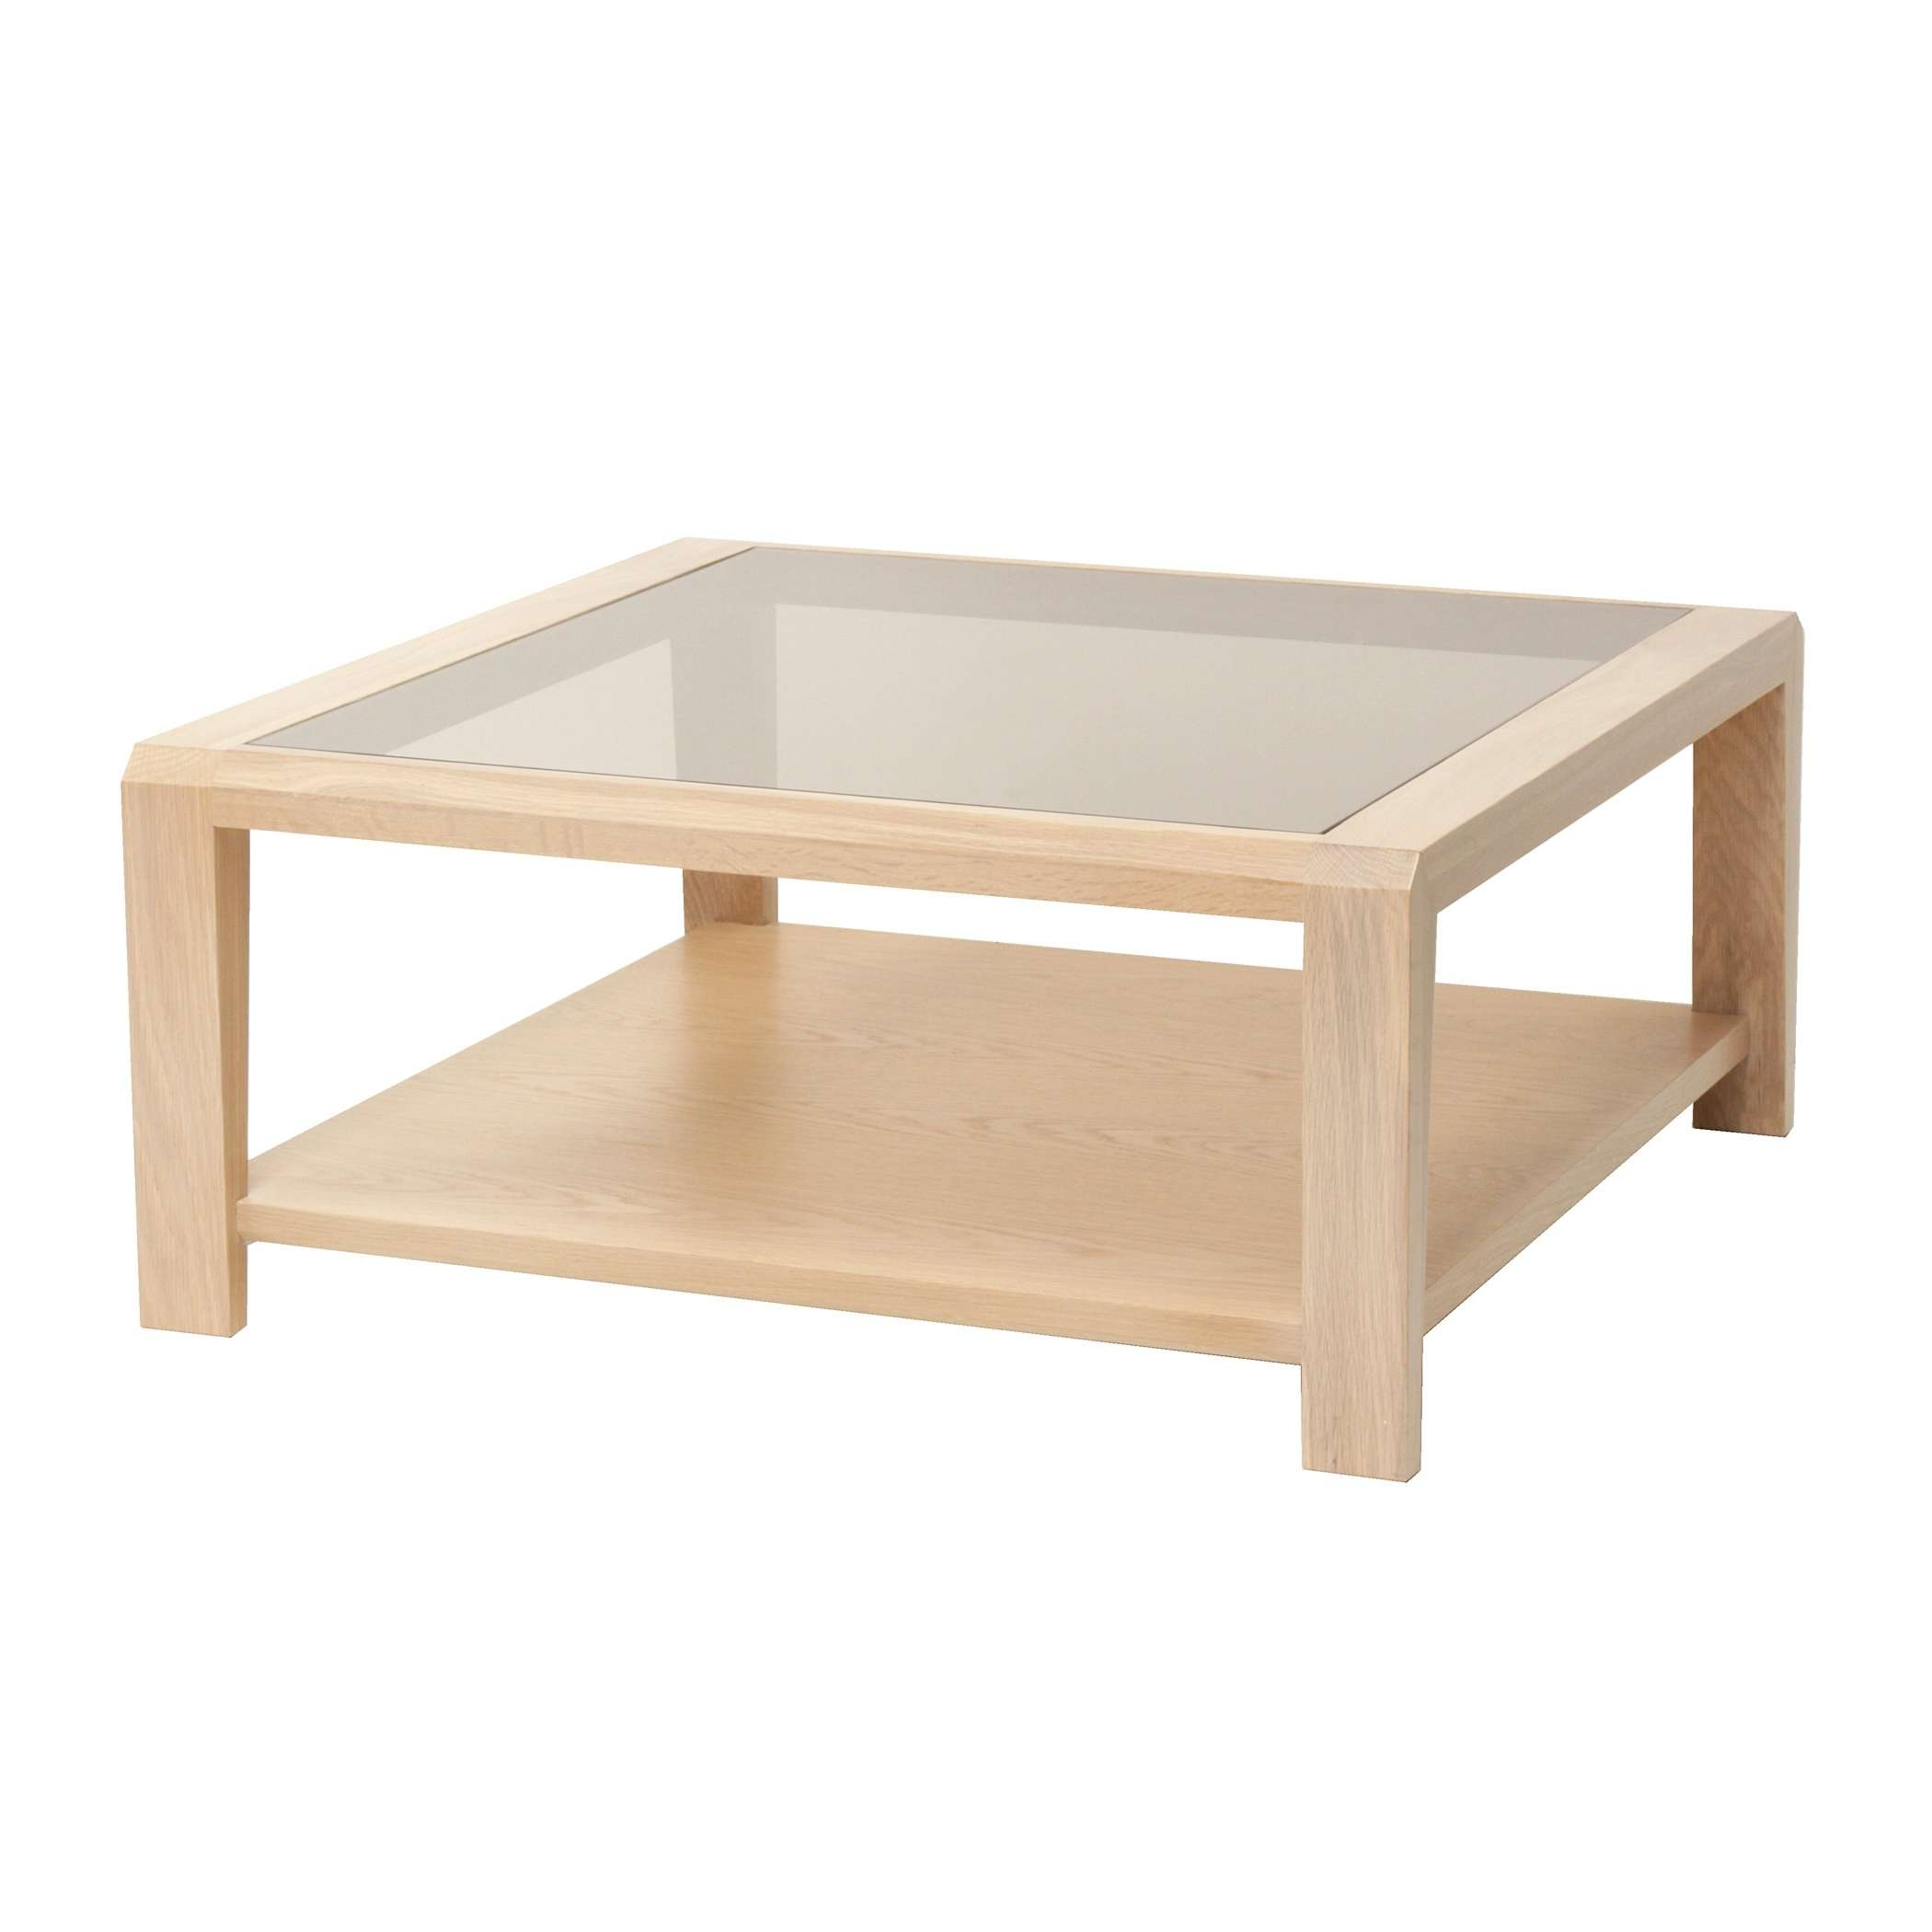 Preferred Solid Glass Coffee Tables For Coffee Table Granite Top Coffee Table Smoked Glass Coffee Table (View 11 of 20)